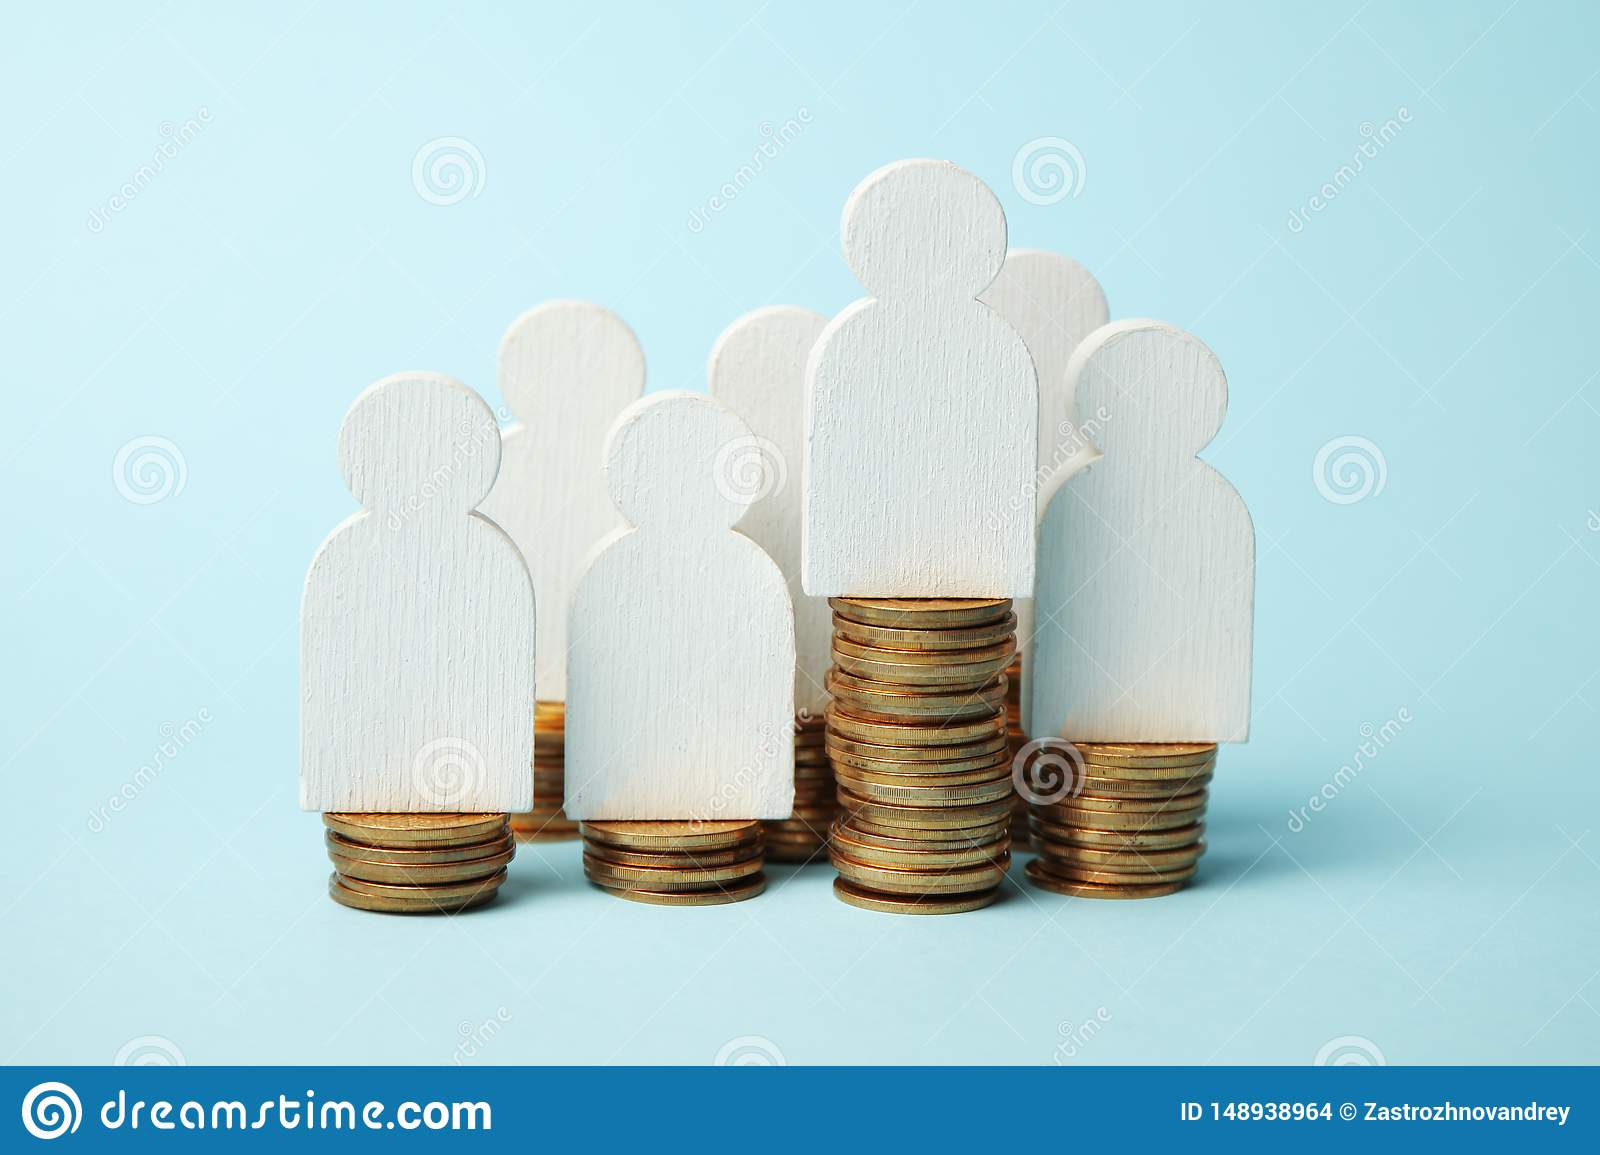 Invest in pension, money payment. Save cash. Growth retirement